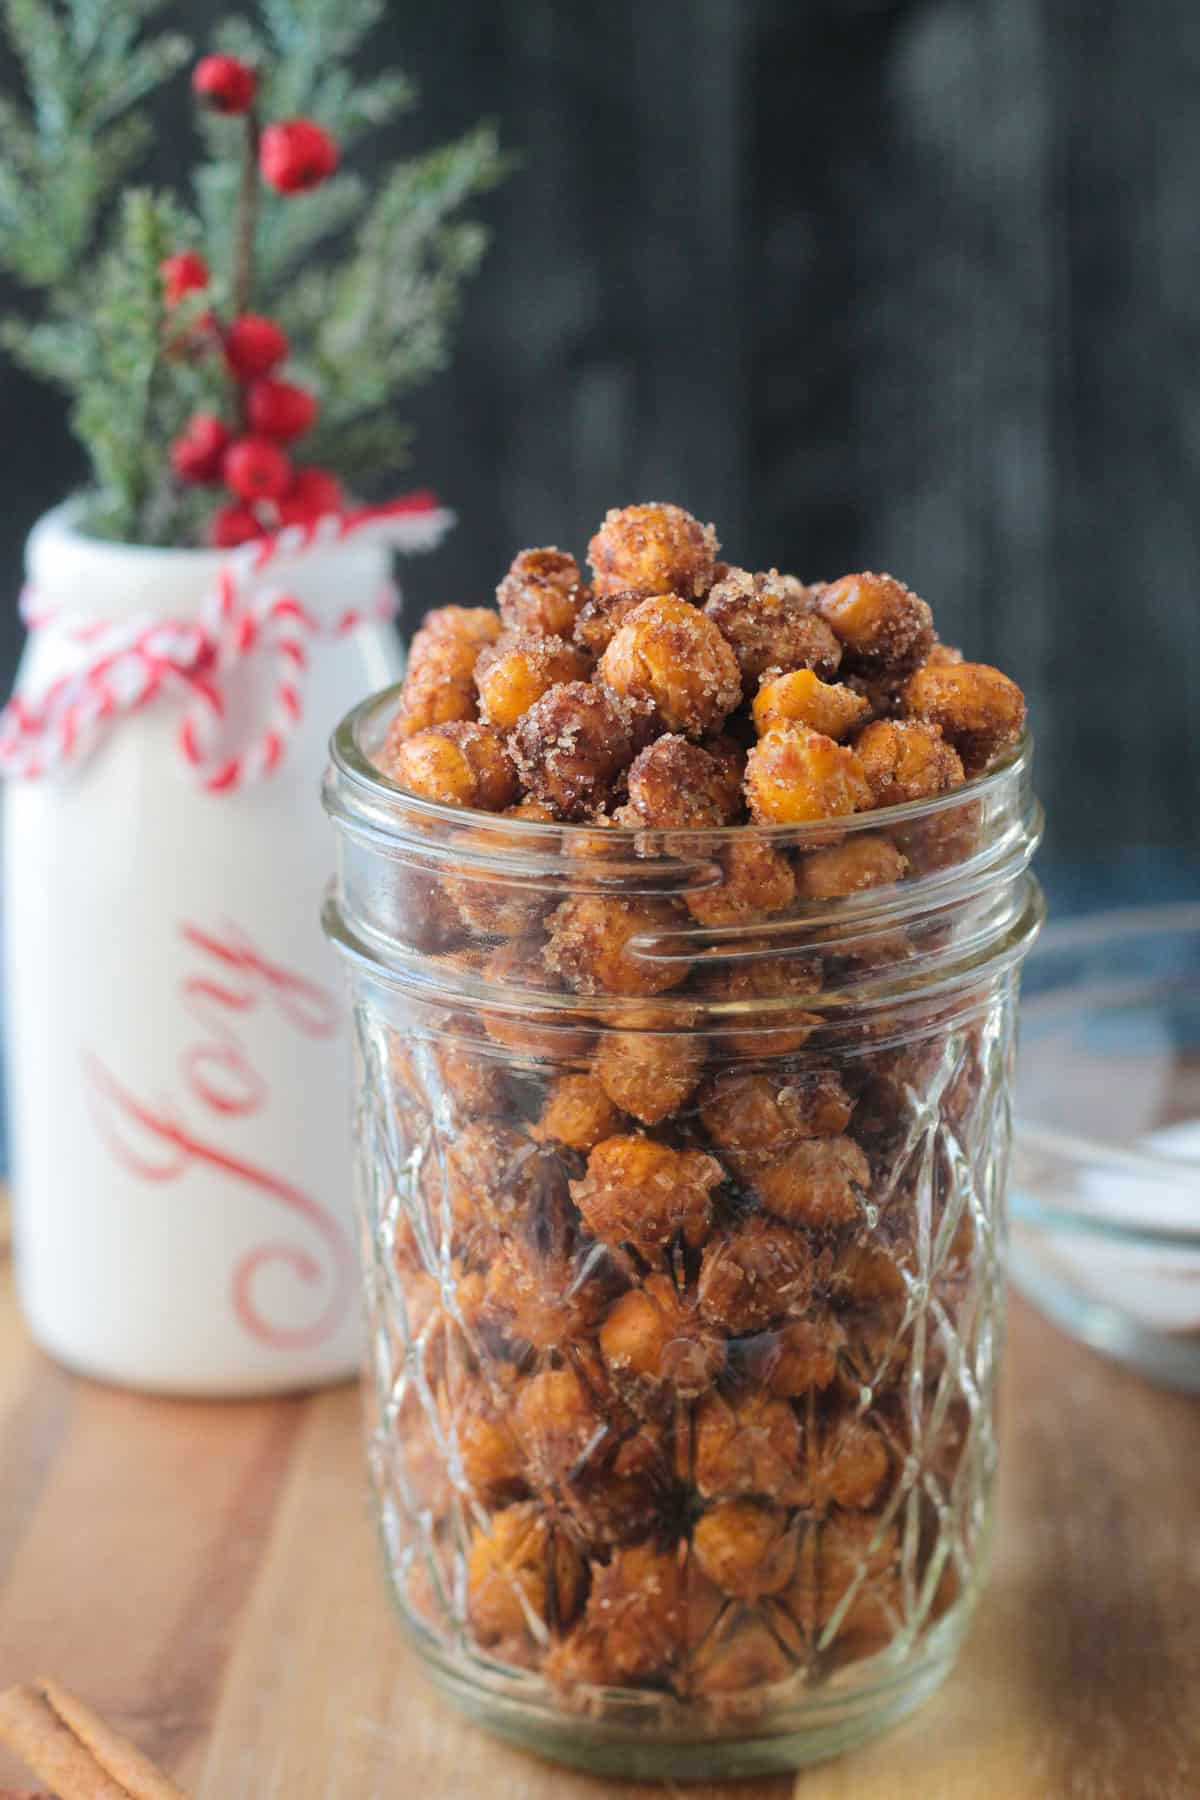 Close up view of crunchy chickpeas in a glass jar.